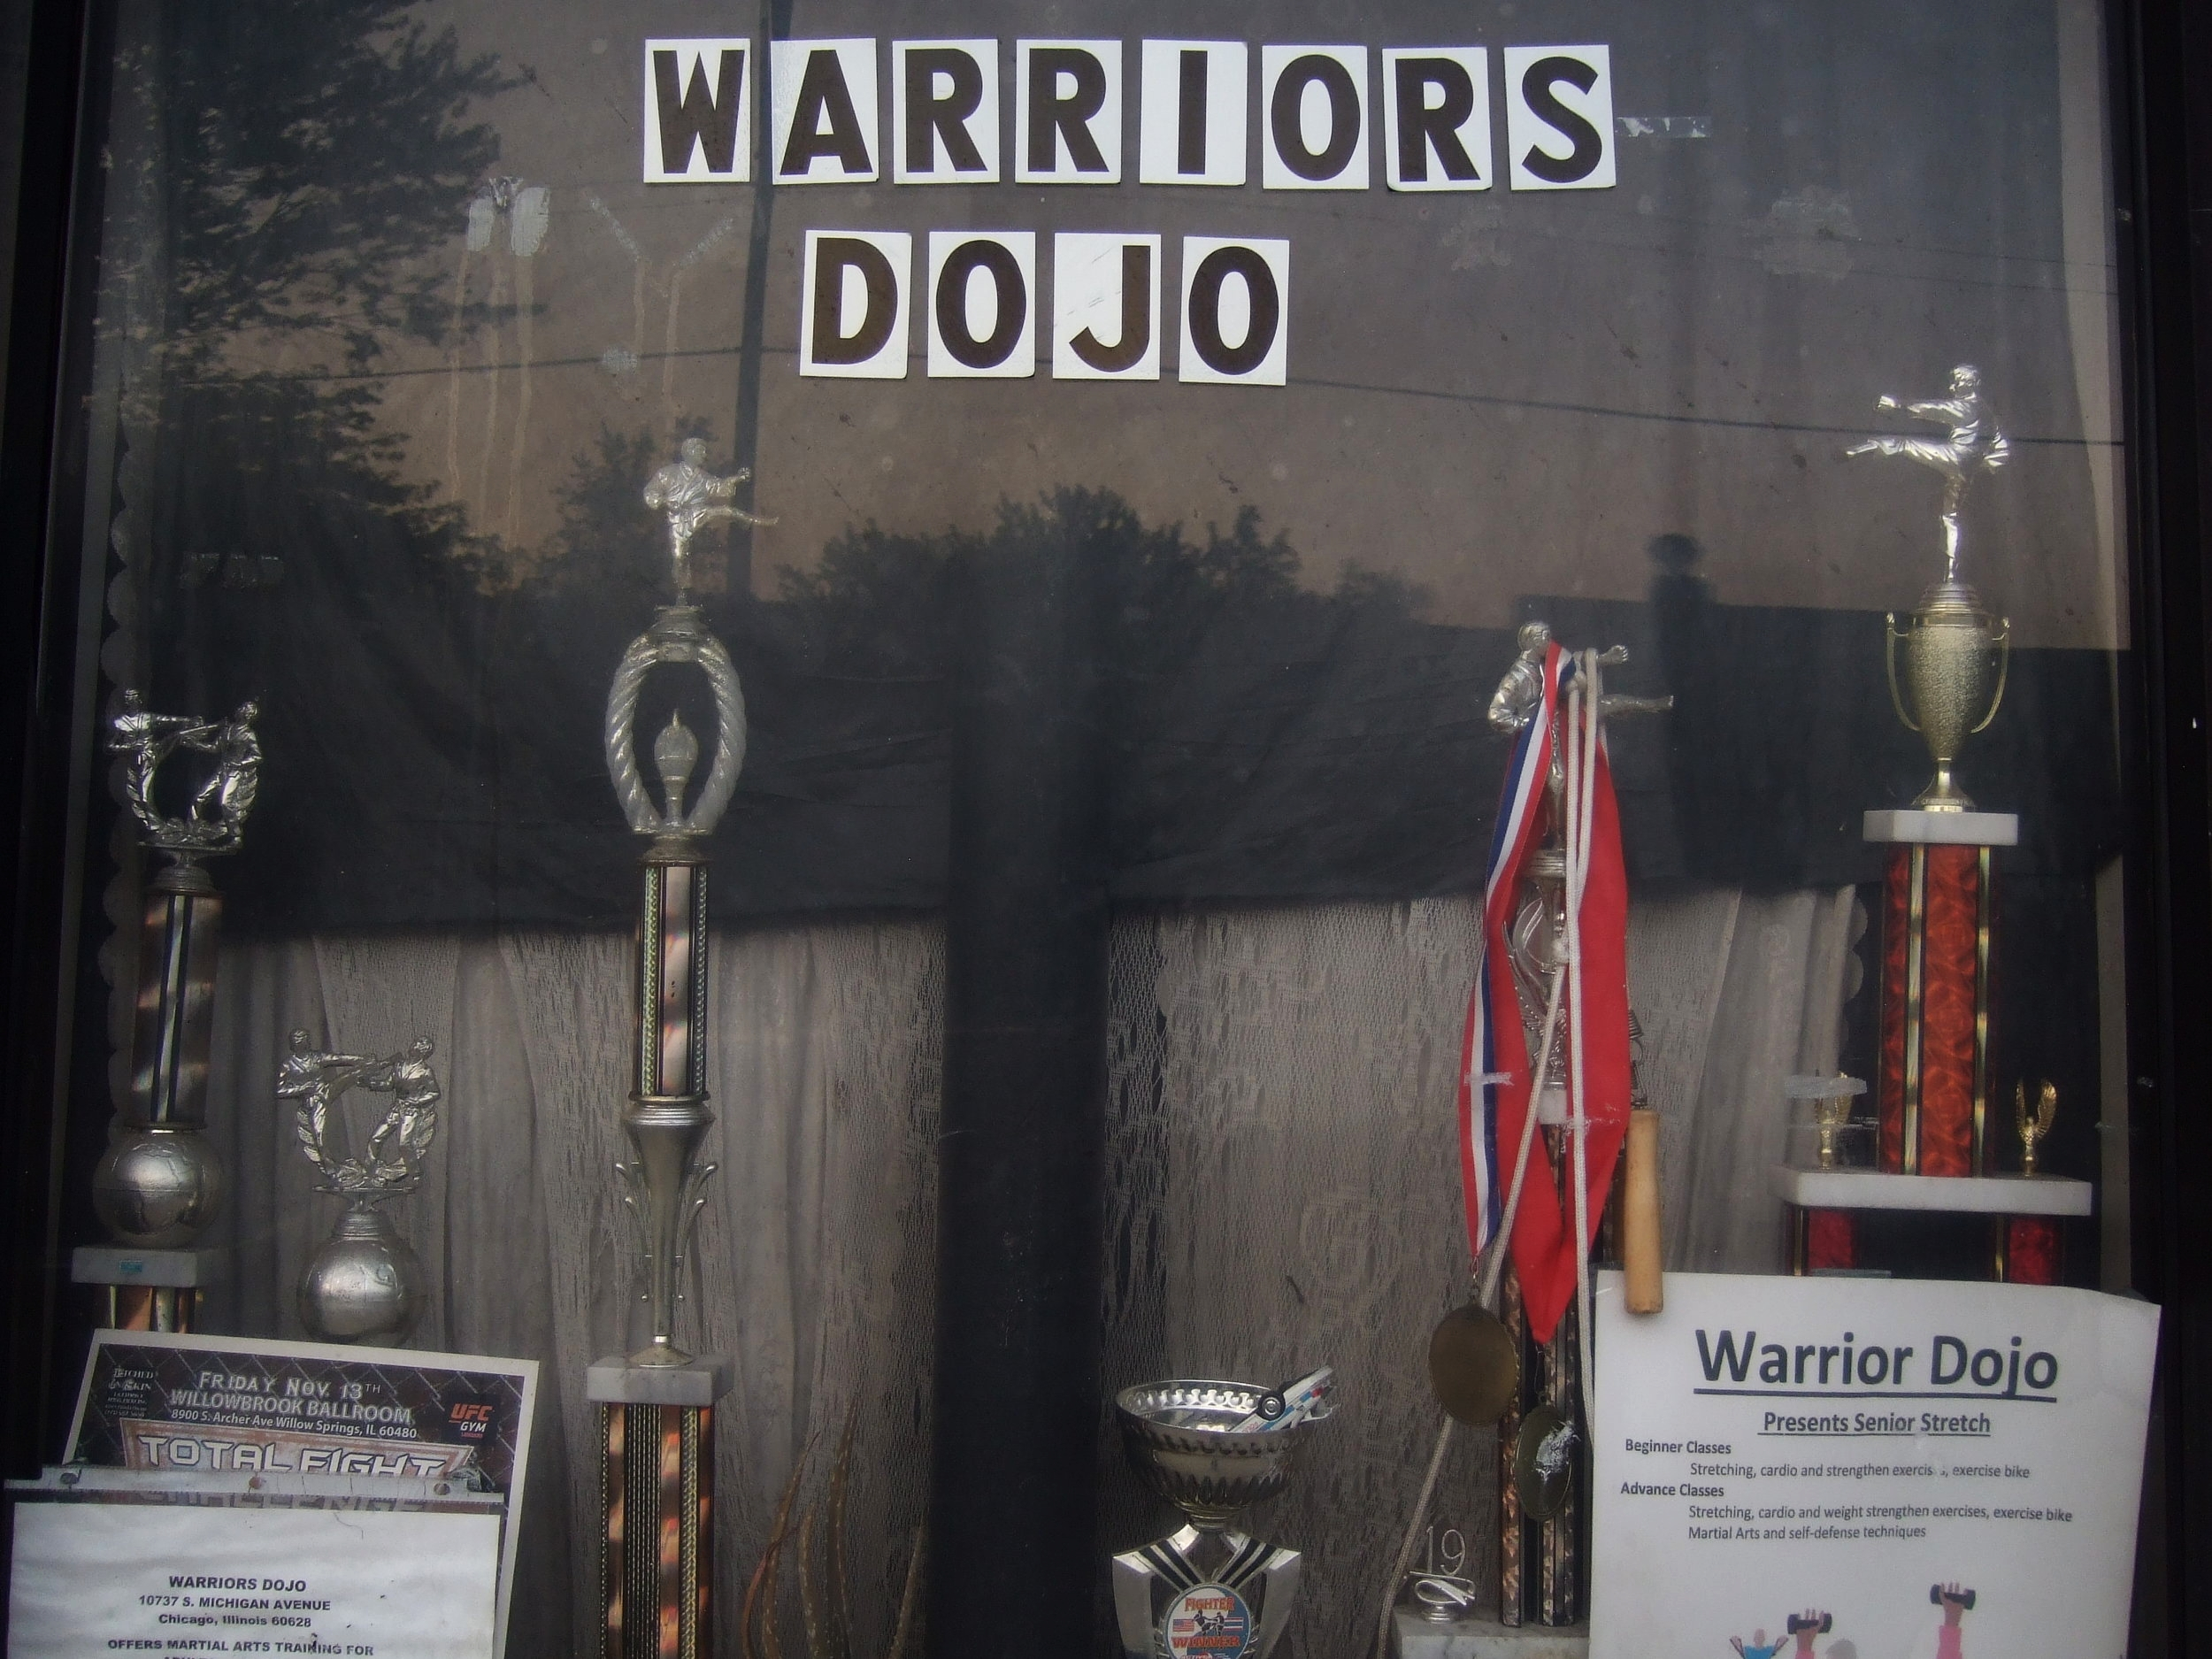 Warriors Dojo, located at 10767 S. Michigan Ave. in Chicago